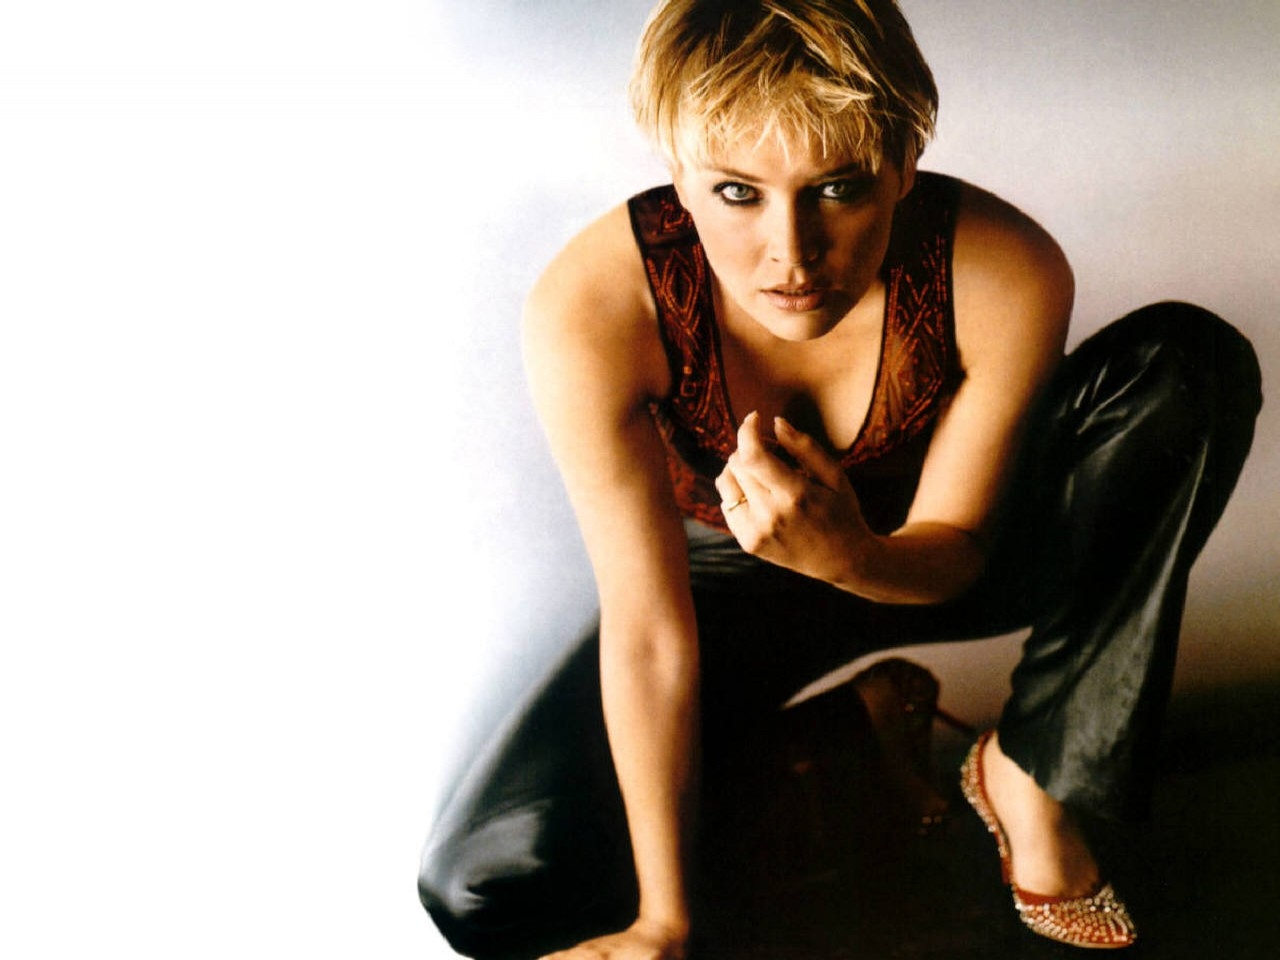 Wallpaper - Sharon Stone, seducente e splendida attrice americana